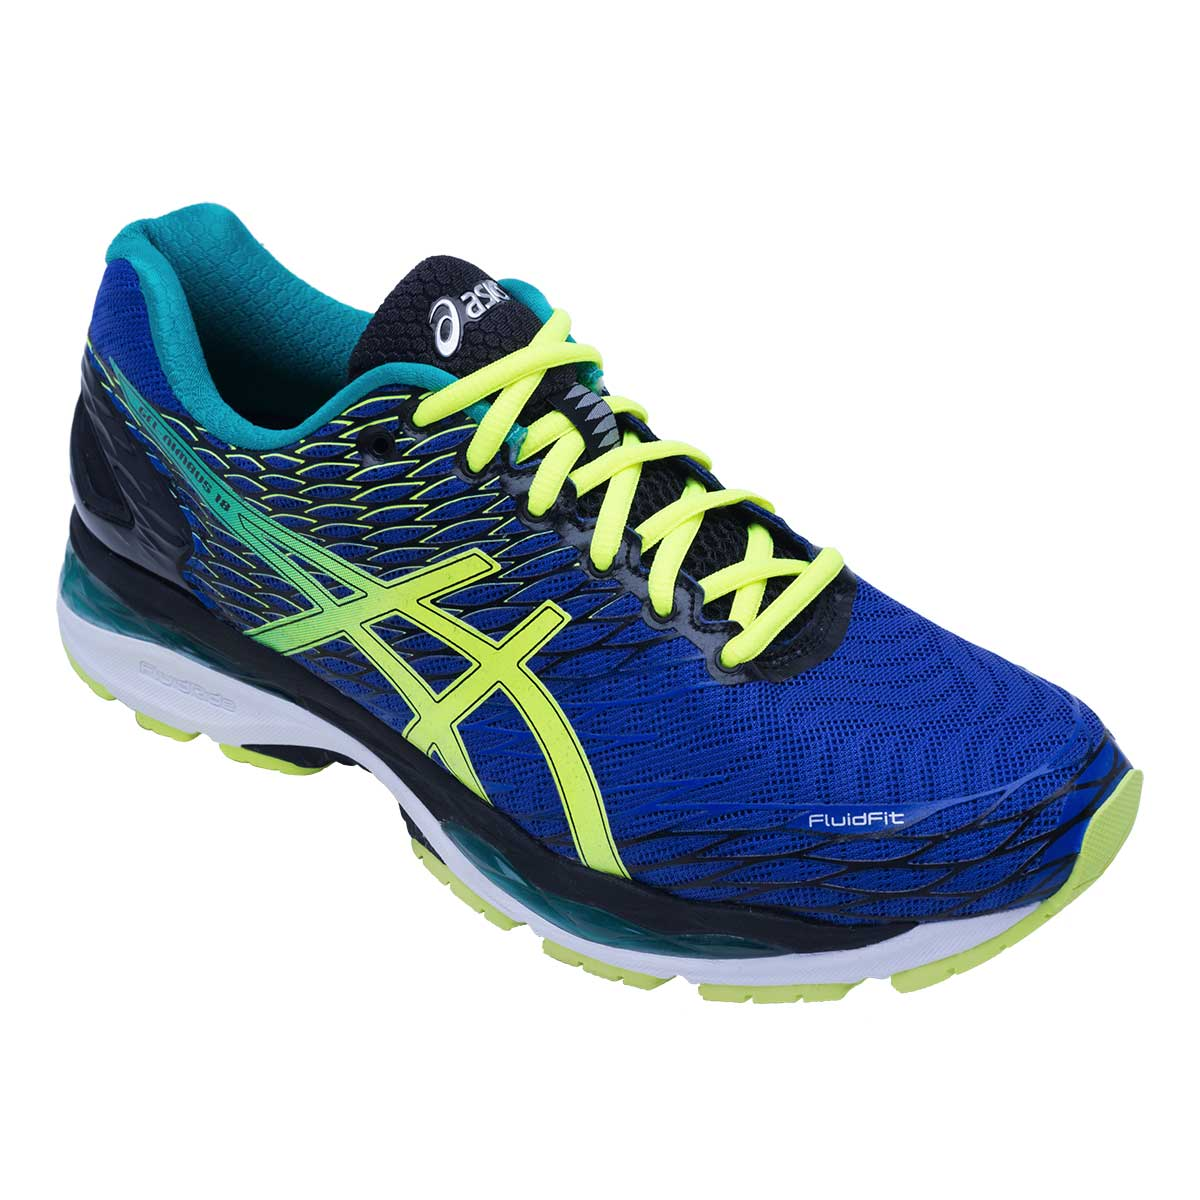 Running Shoes, Running, Buy, Asics, Asics Gel-Nimbus 18 Running Shoes (Blue/Flash  Yellow/Black)